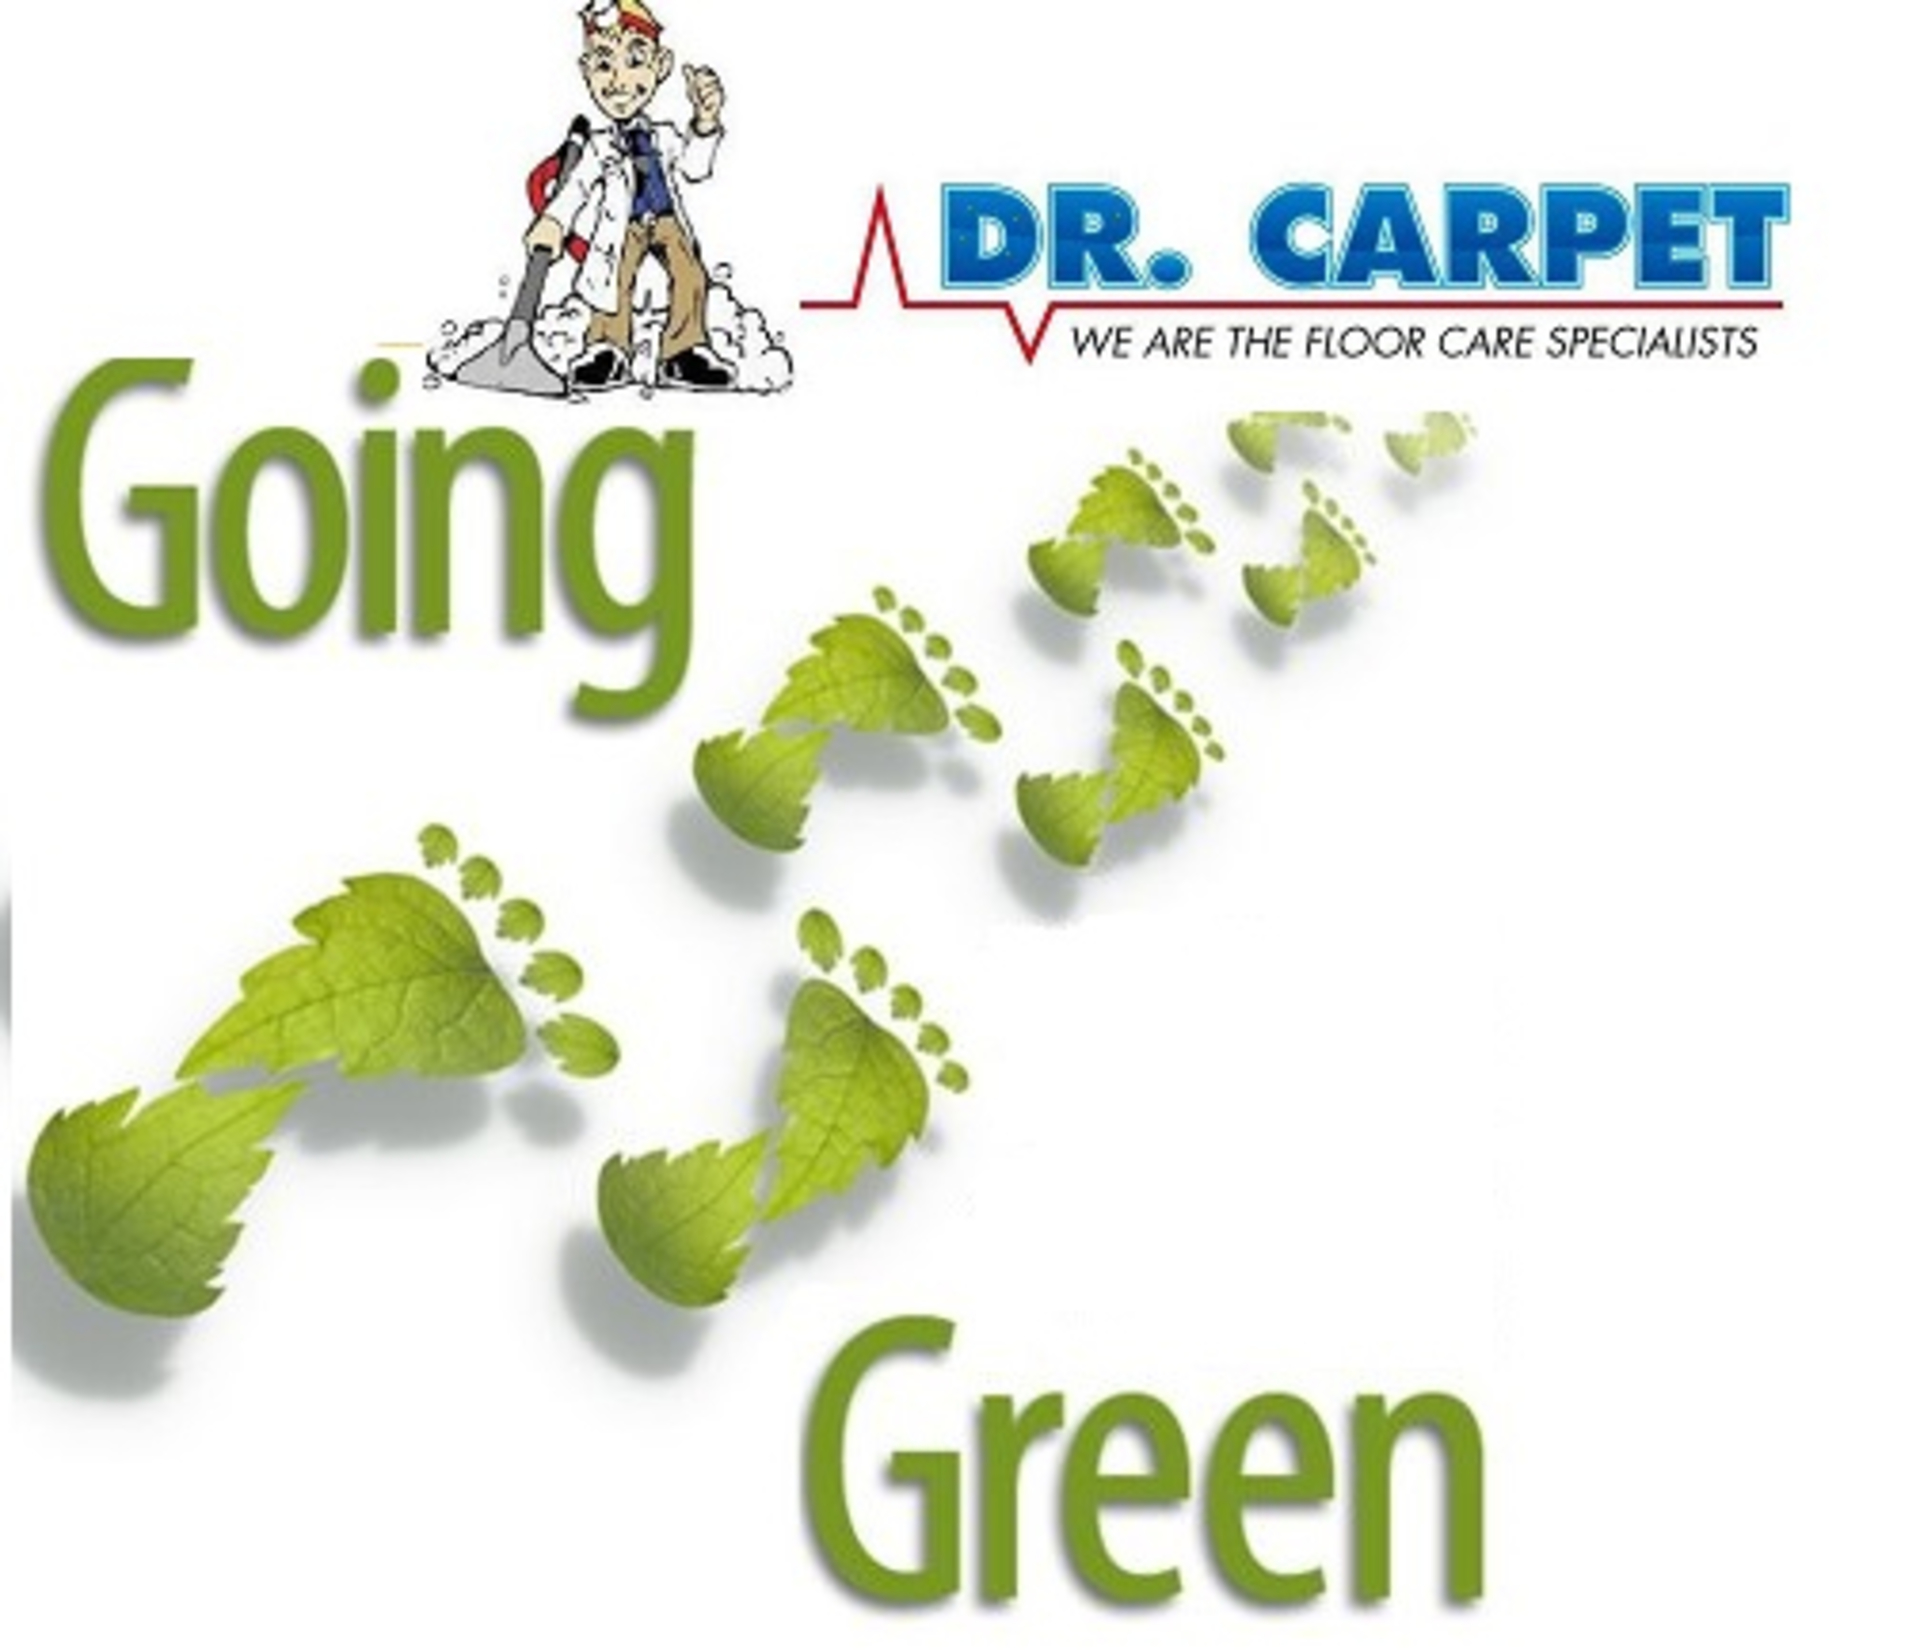 Finally Get Rid Of That Carpet Dirt Through Eco Green Carpet Cleaning Orange County image